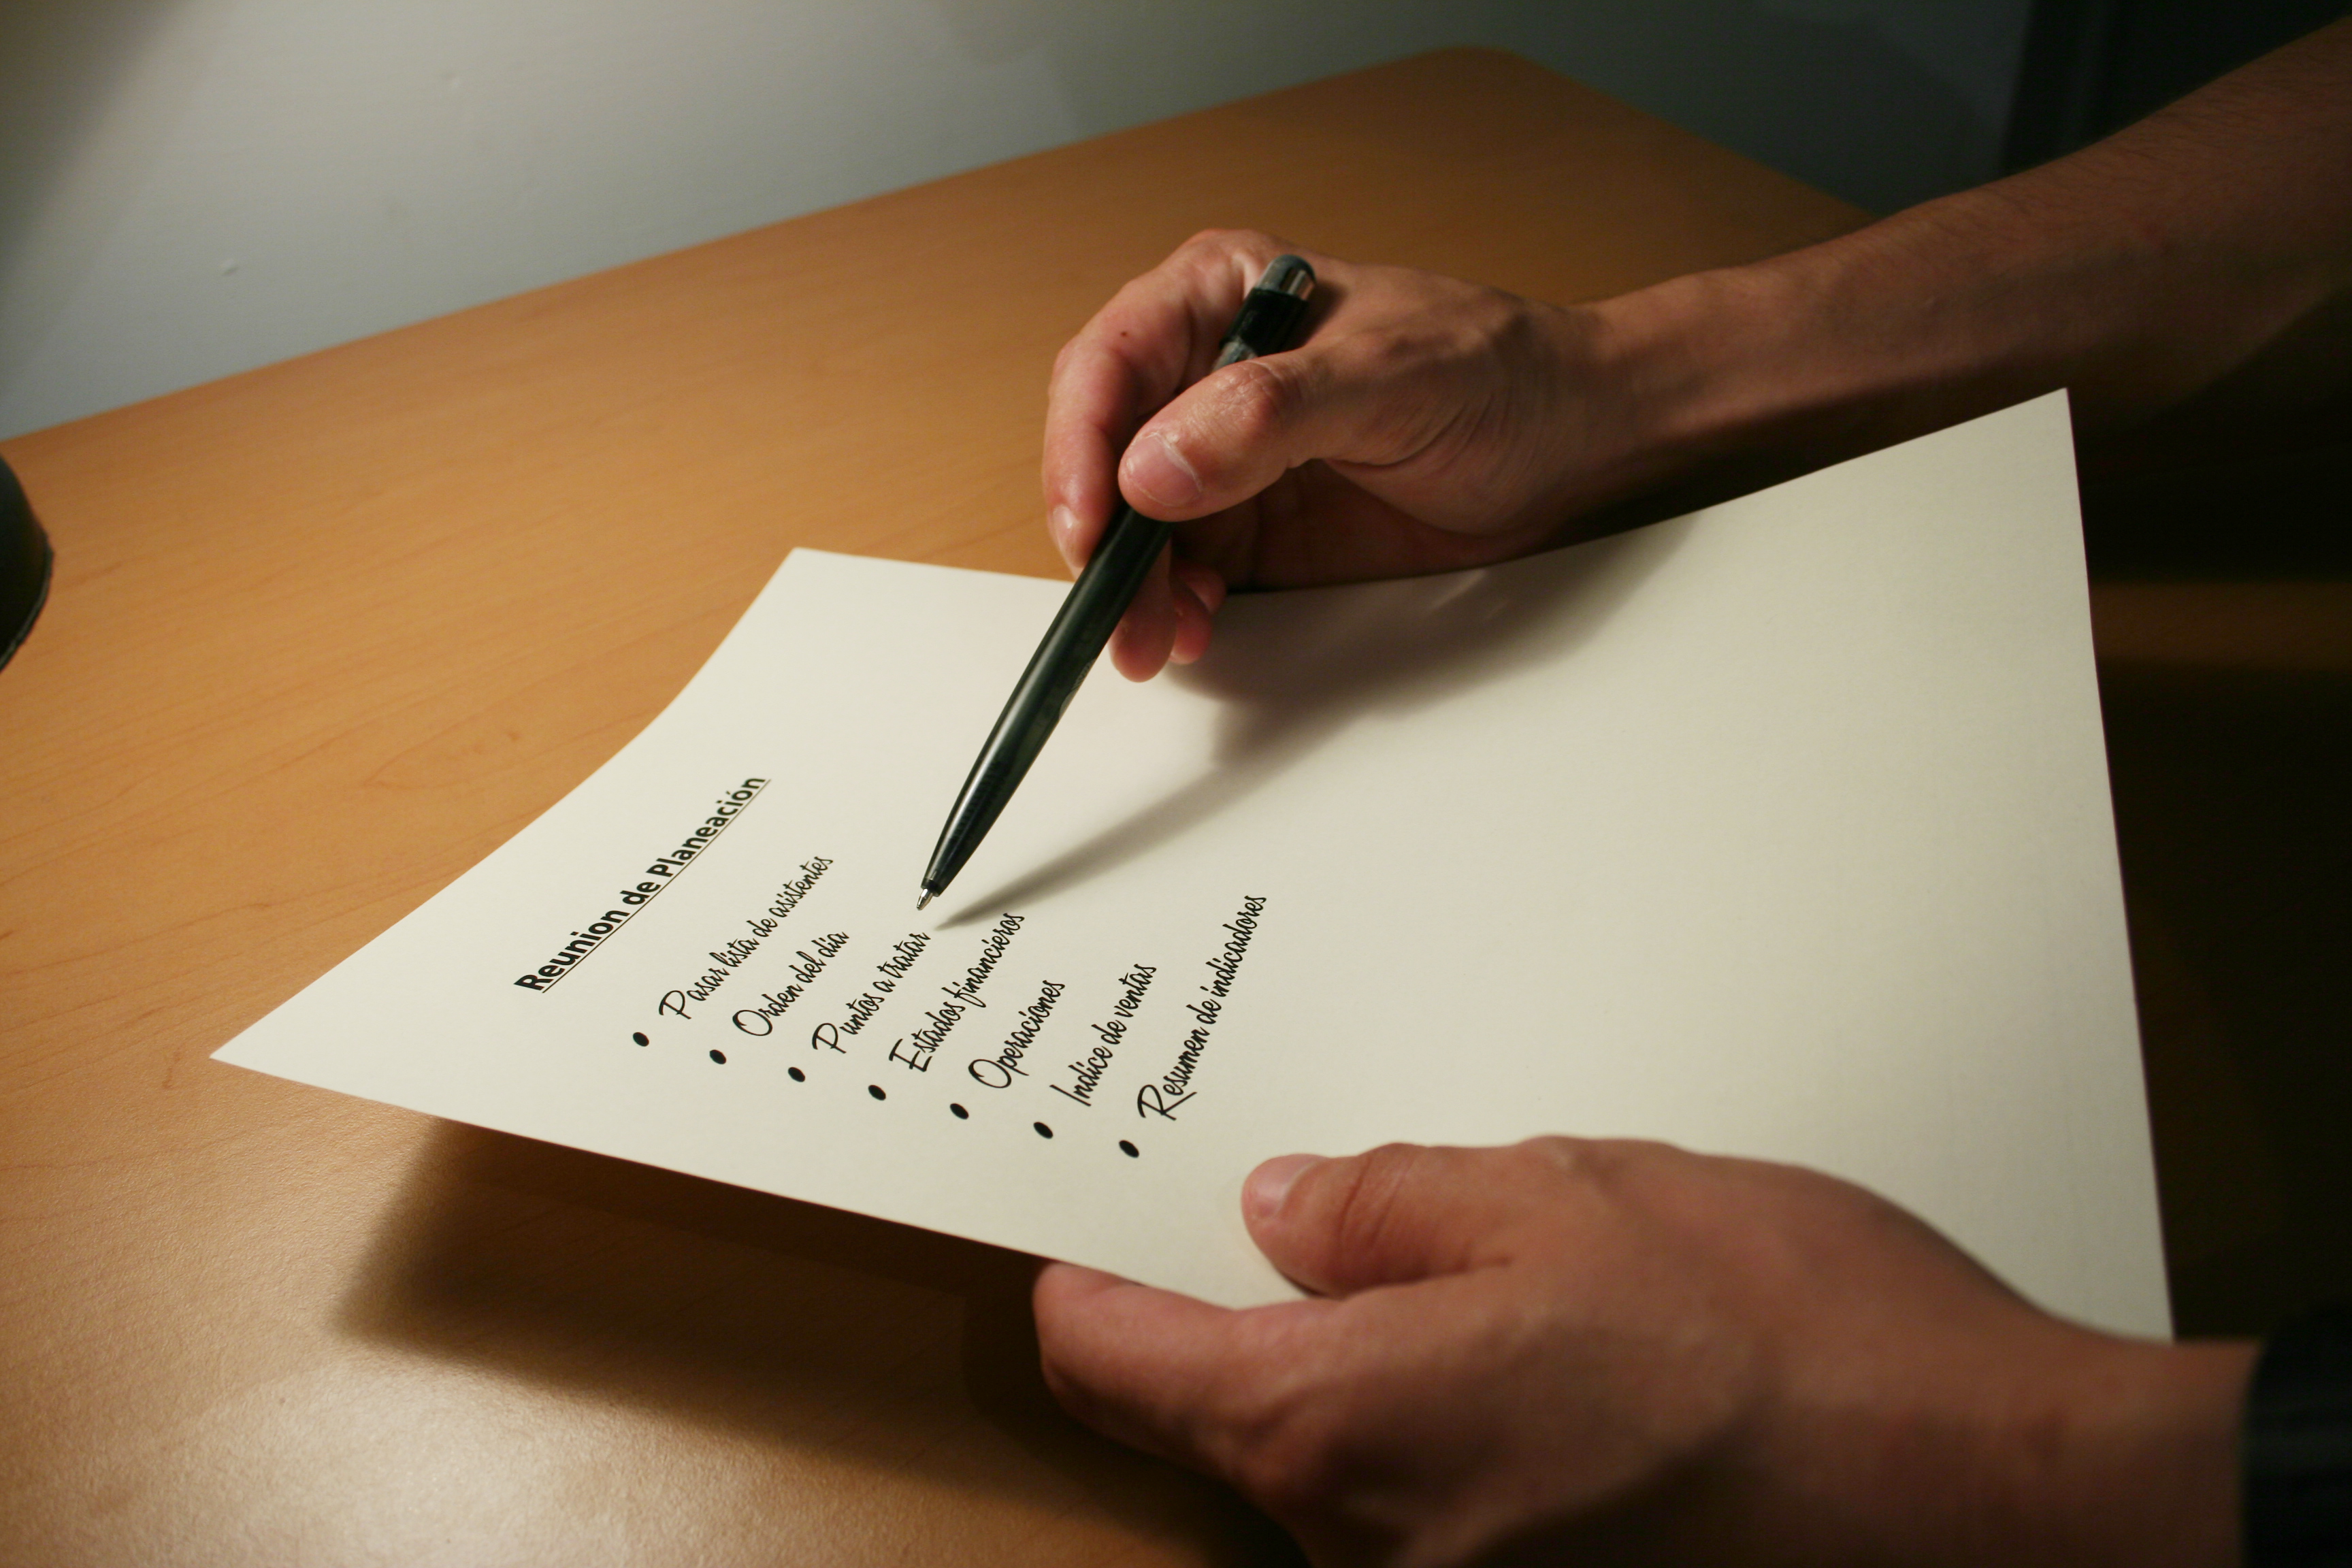 List of most important tasks